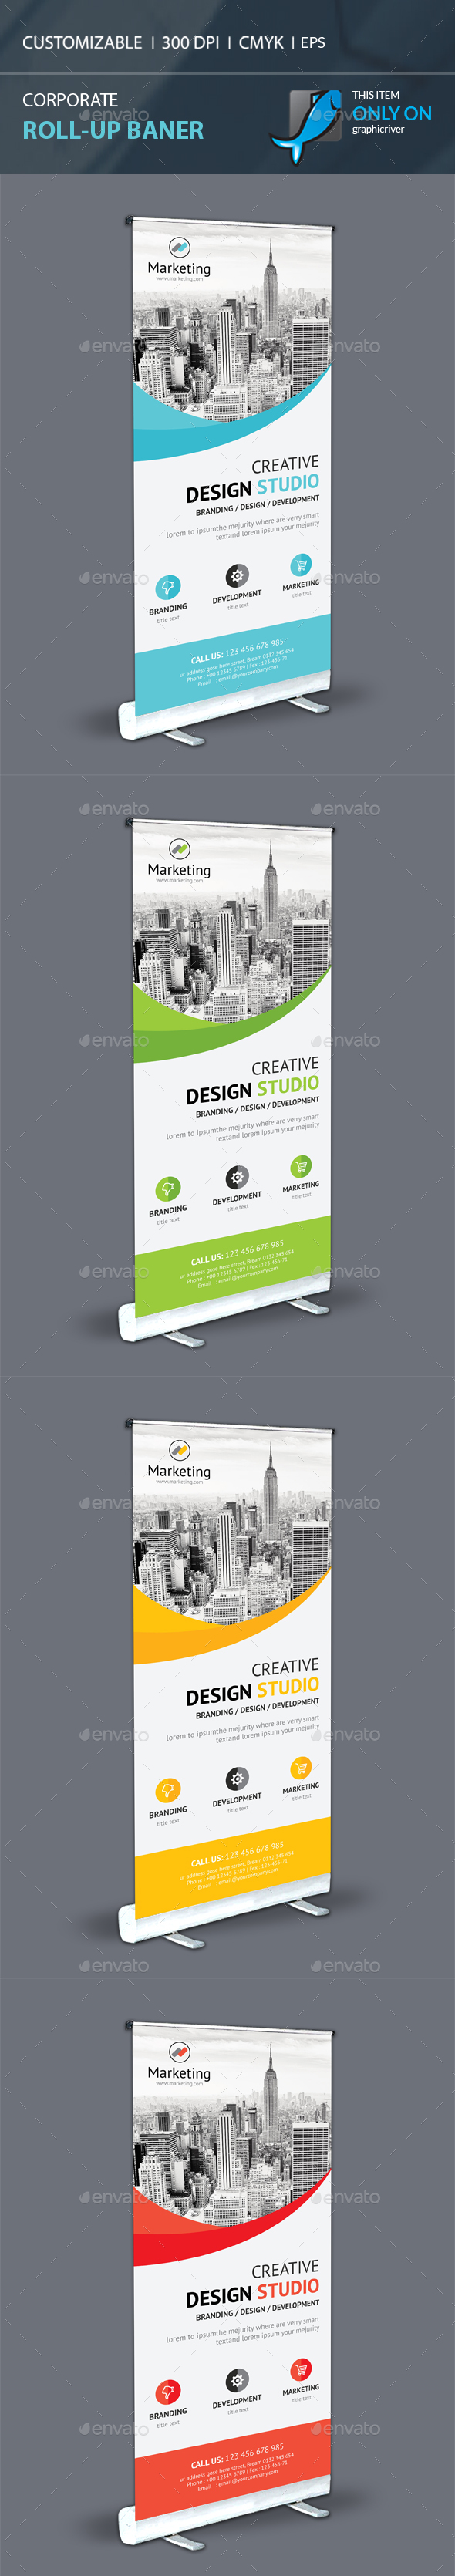 Corporate Roll-Up - Signage Print Templates